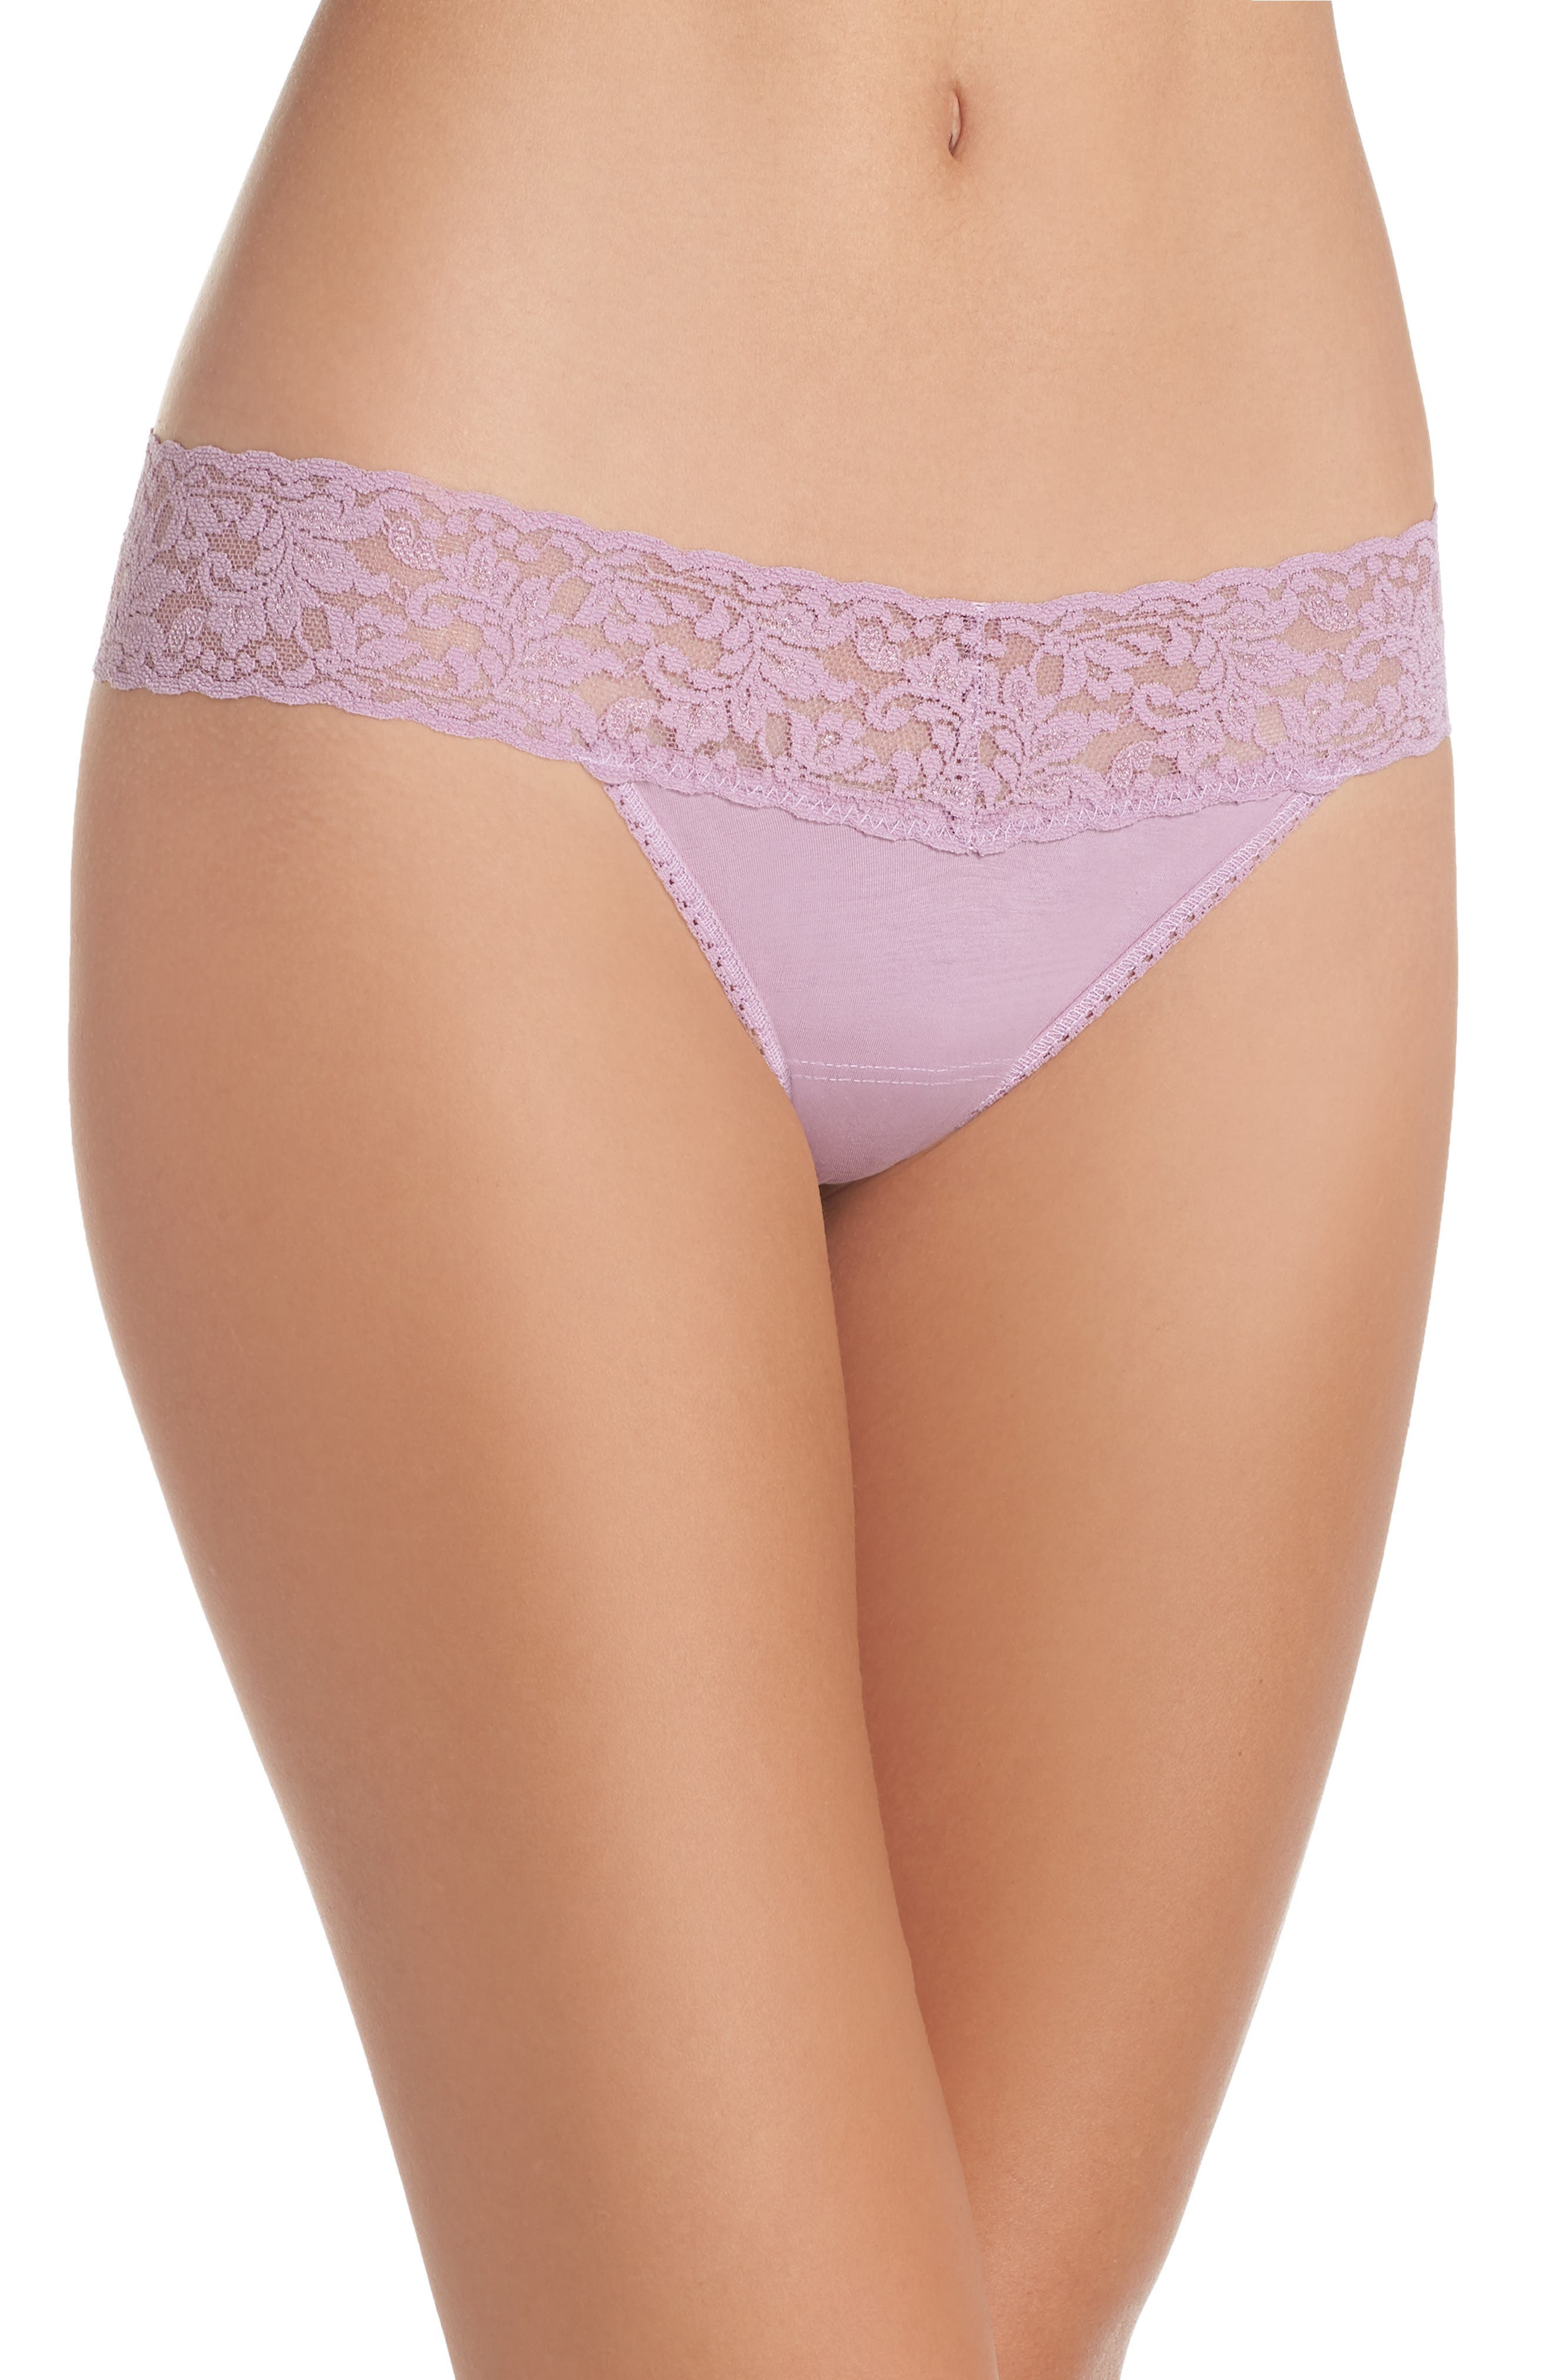 Low Rise Thong,                             Main thumbnail 1, color,                             WATER LILY